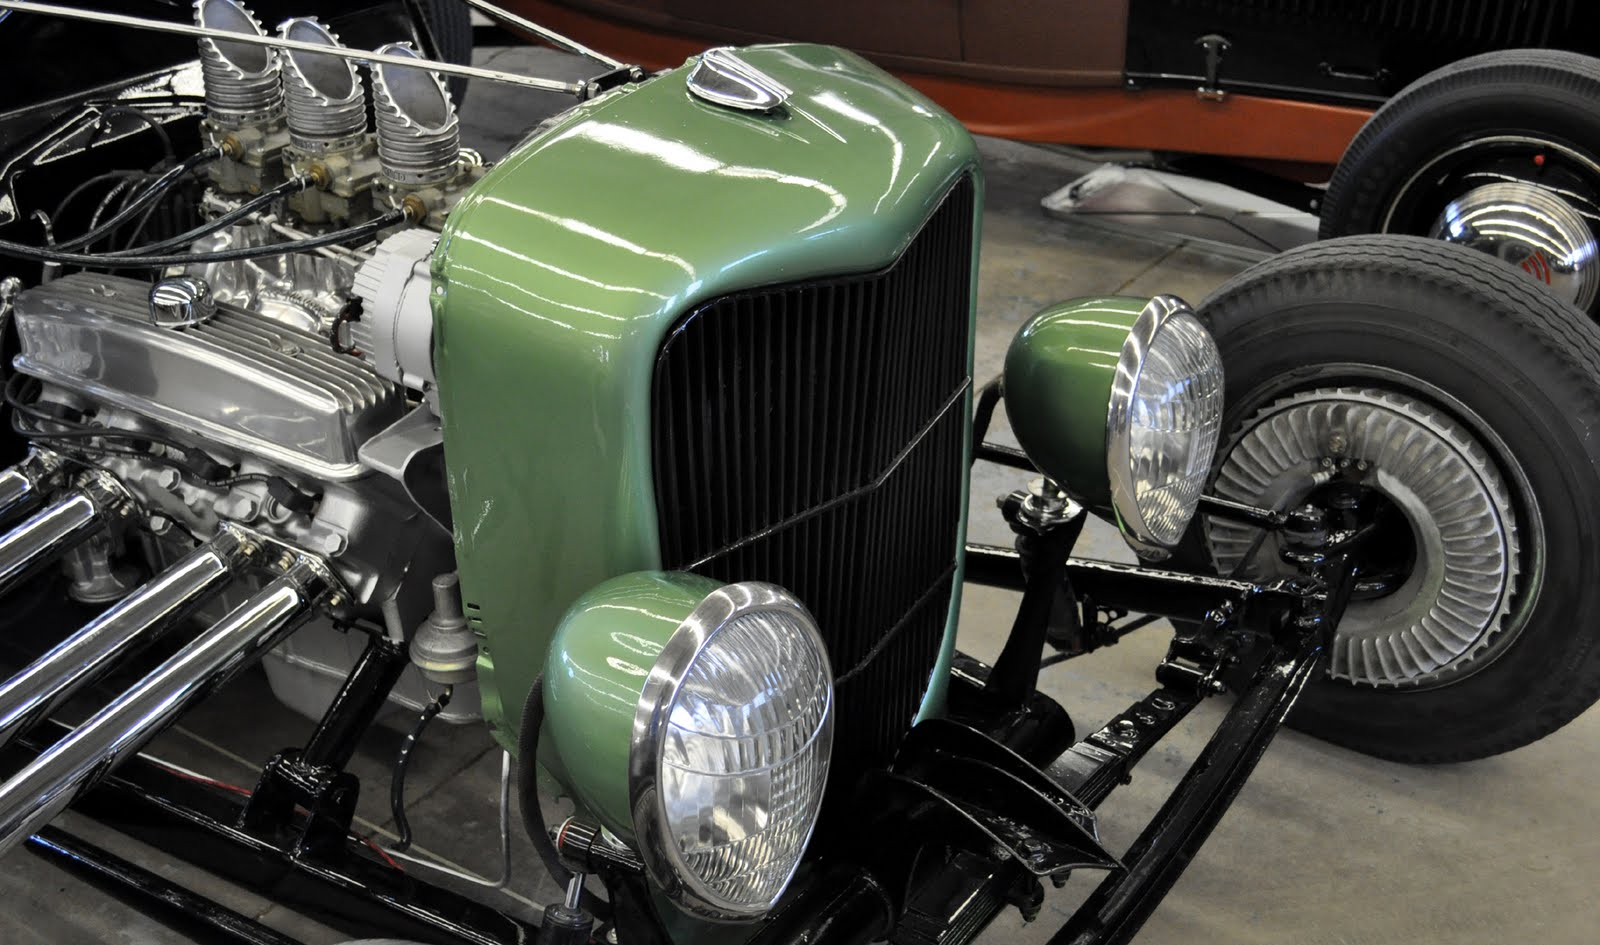 Hot Rod Headlights : Just a car guy this is new thing never seen it before